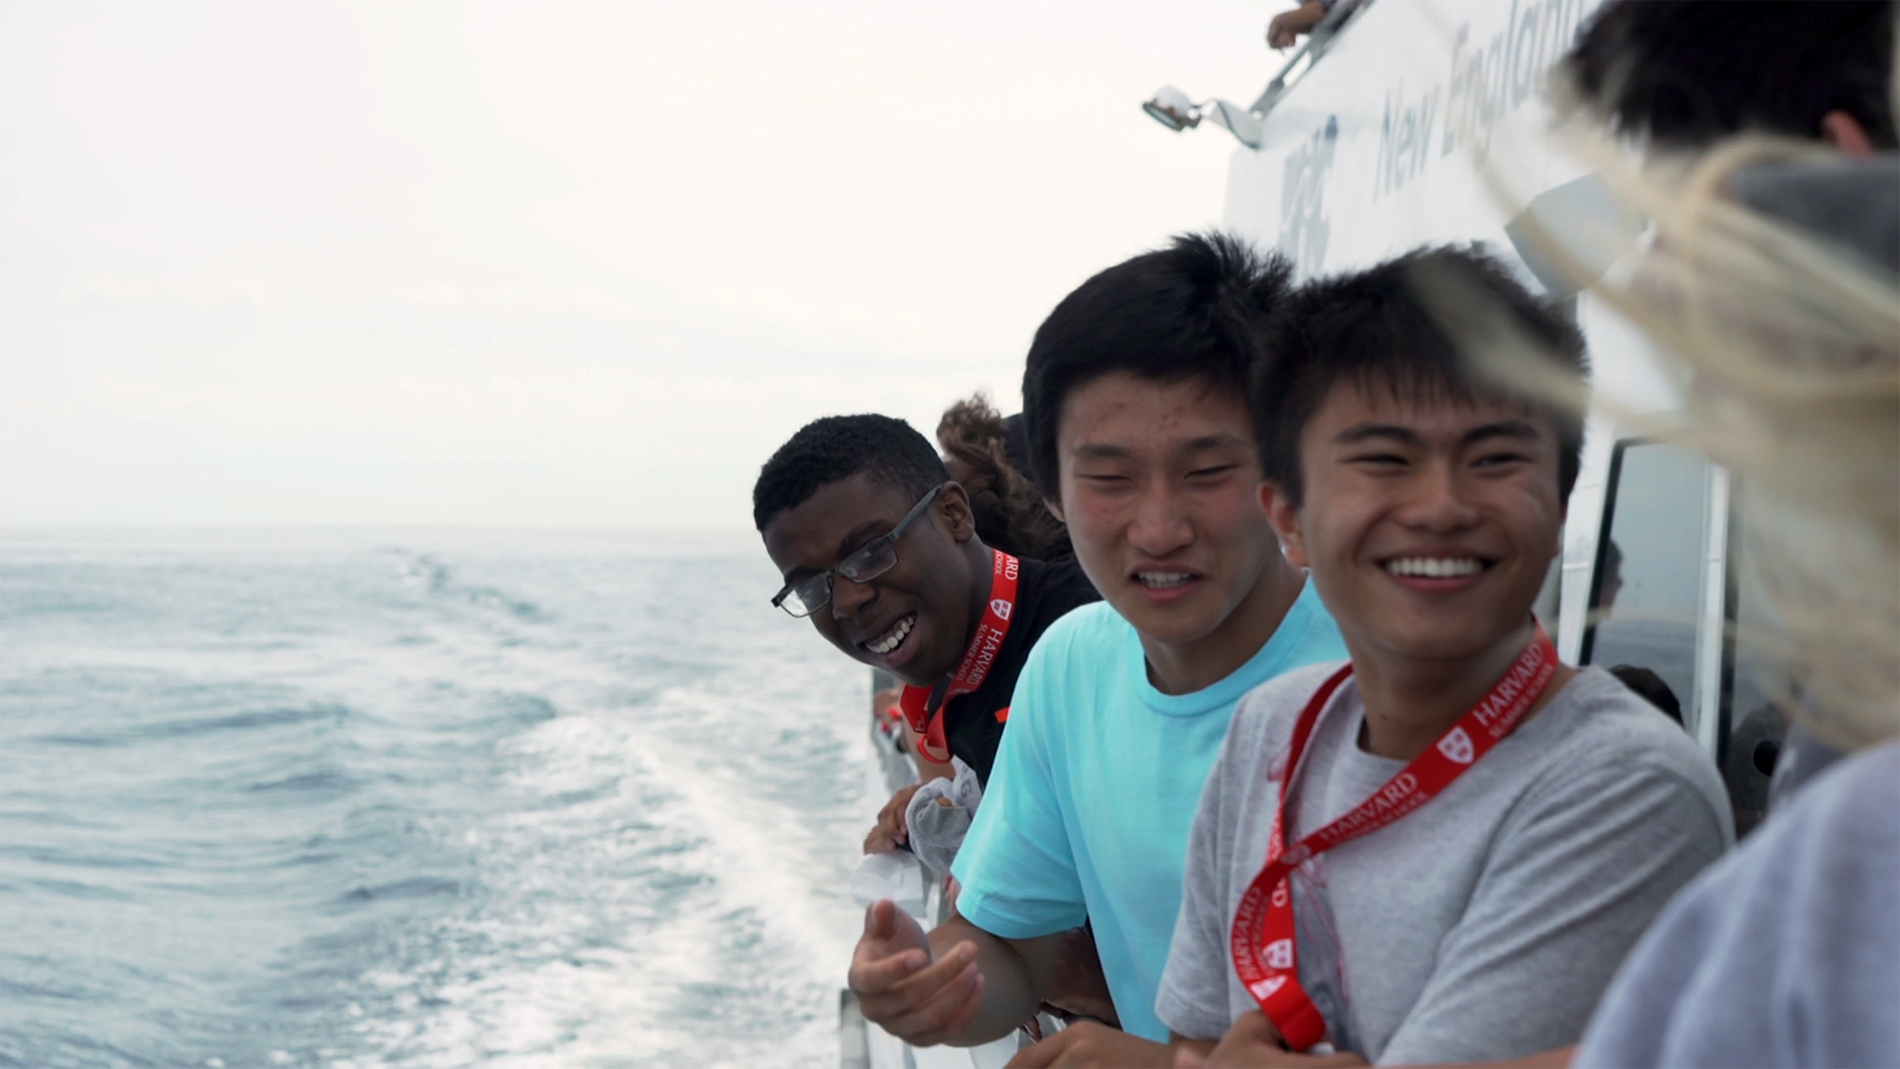 Summer Program - STEM | Harvard University: Summer High School Programs